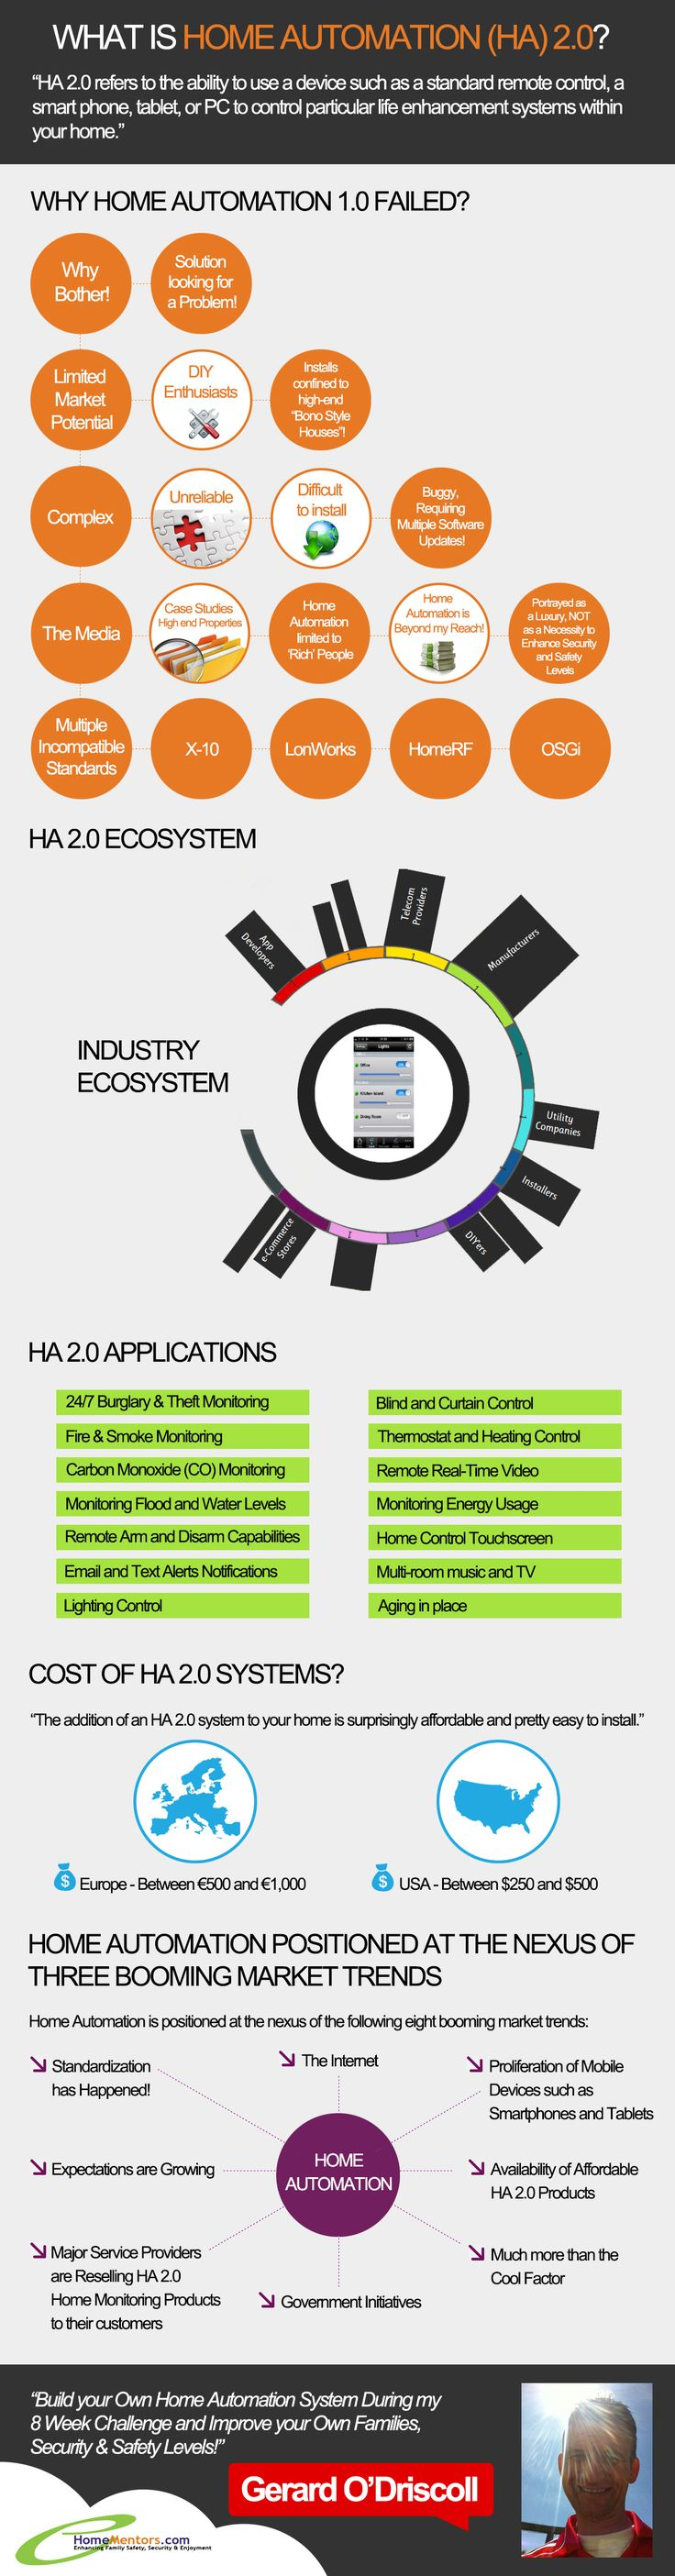 Home Automation 20 Ecosystem